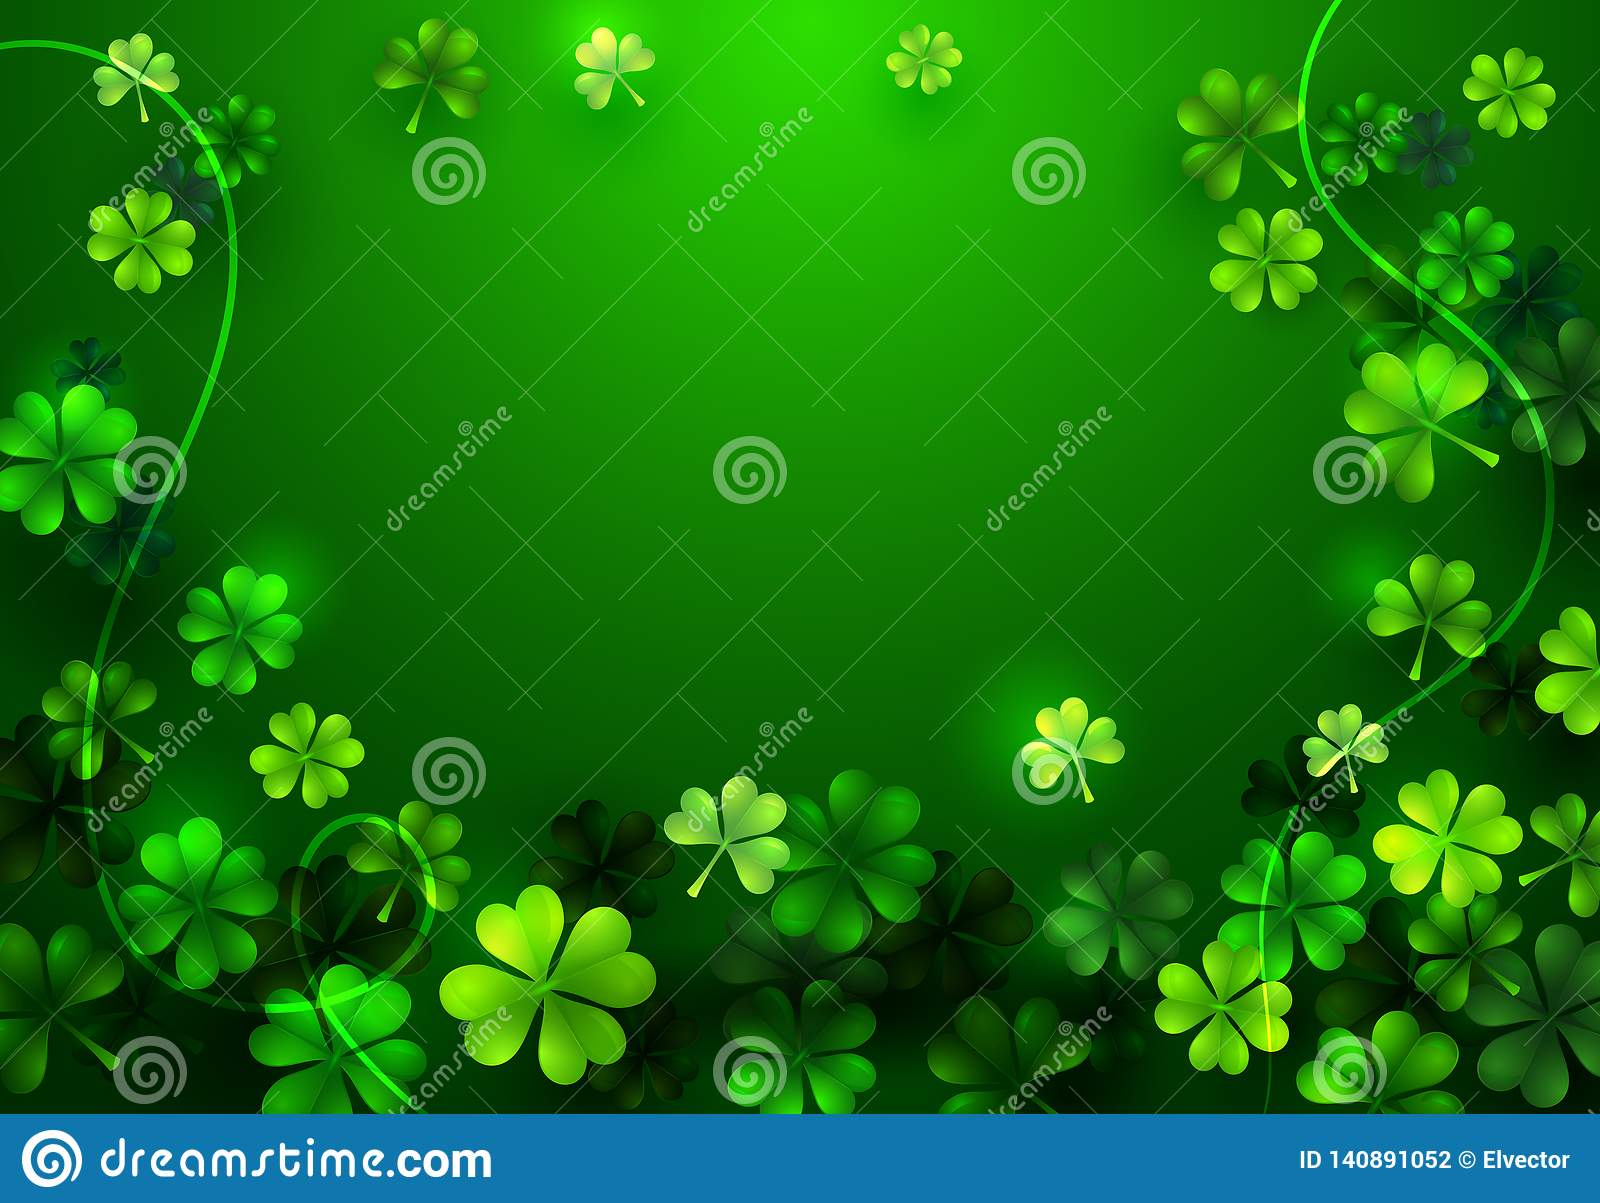 Stylish Happy Saint Patricks Day Blank Greeting Card Or